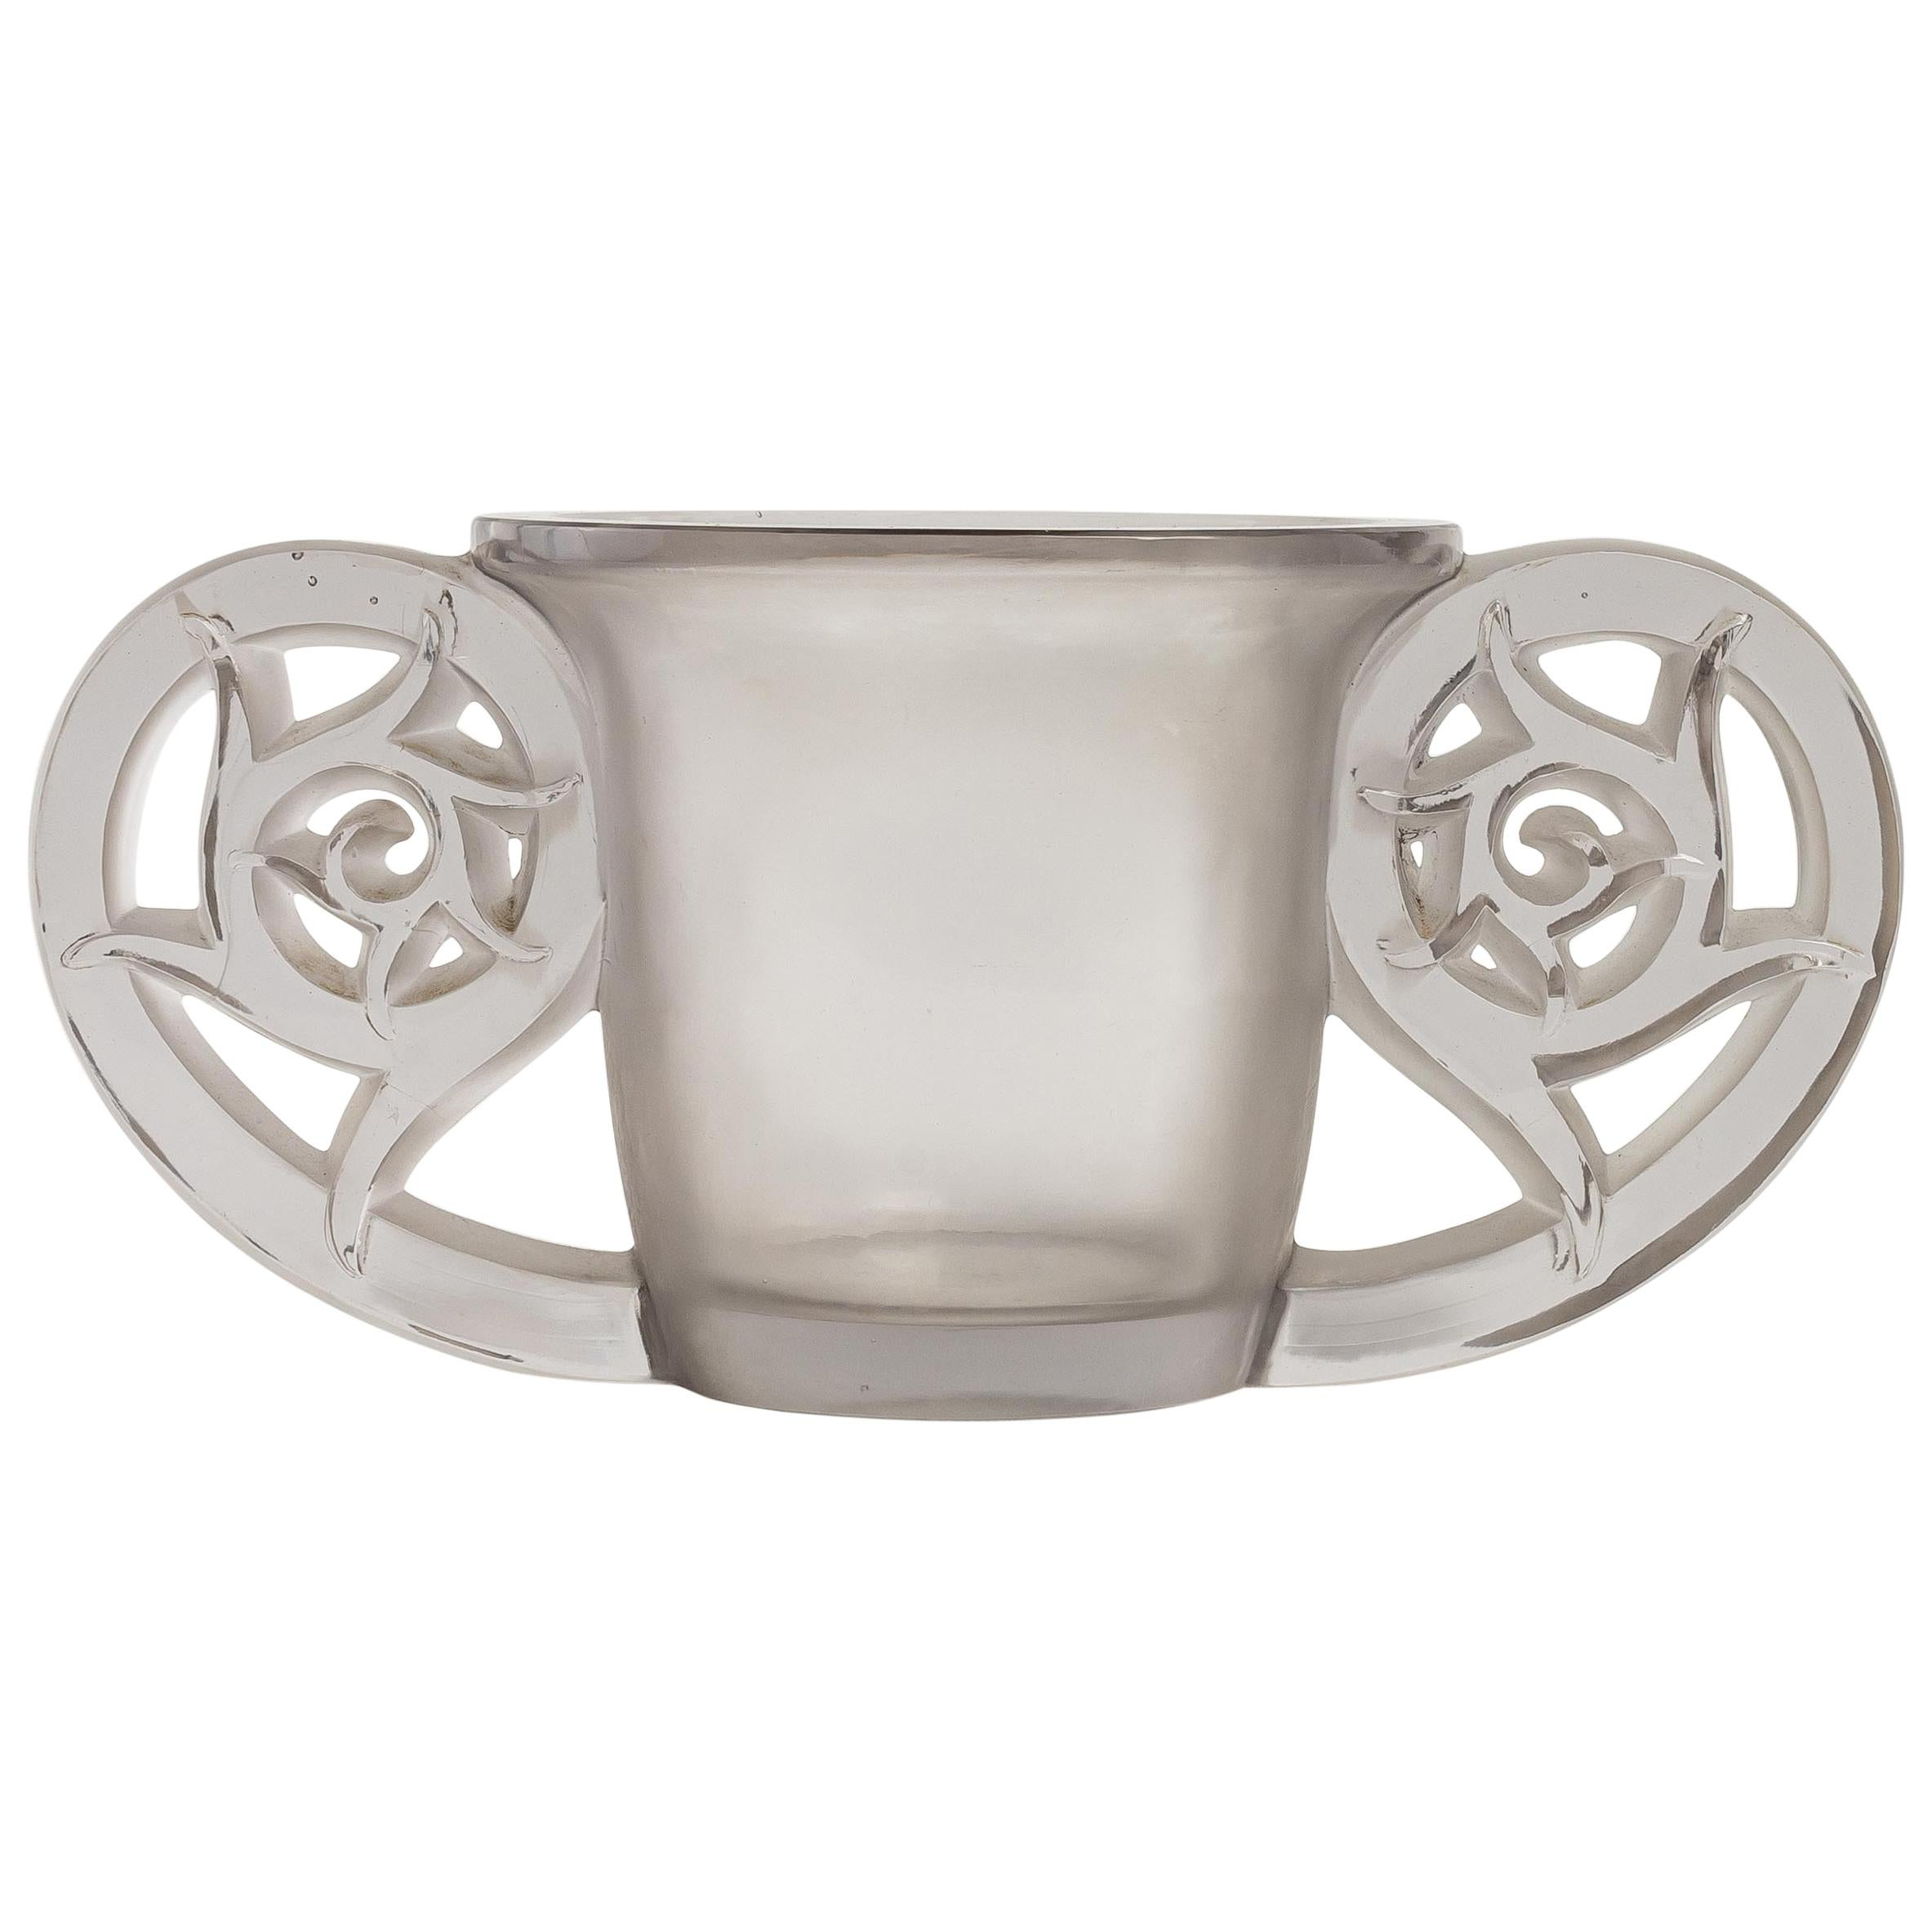 1926 René Lalique Pierrefonds Vase in Clear and Acid Satin Finish Glass